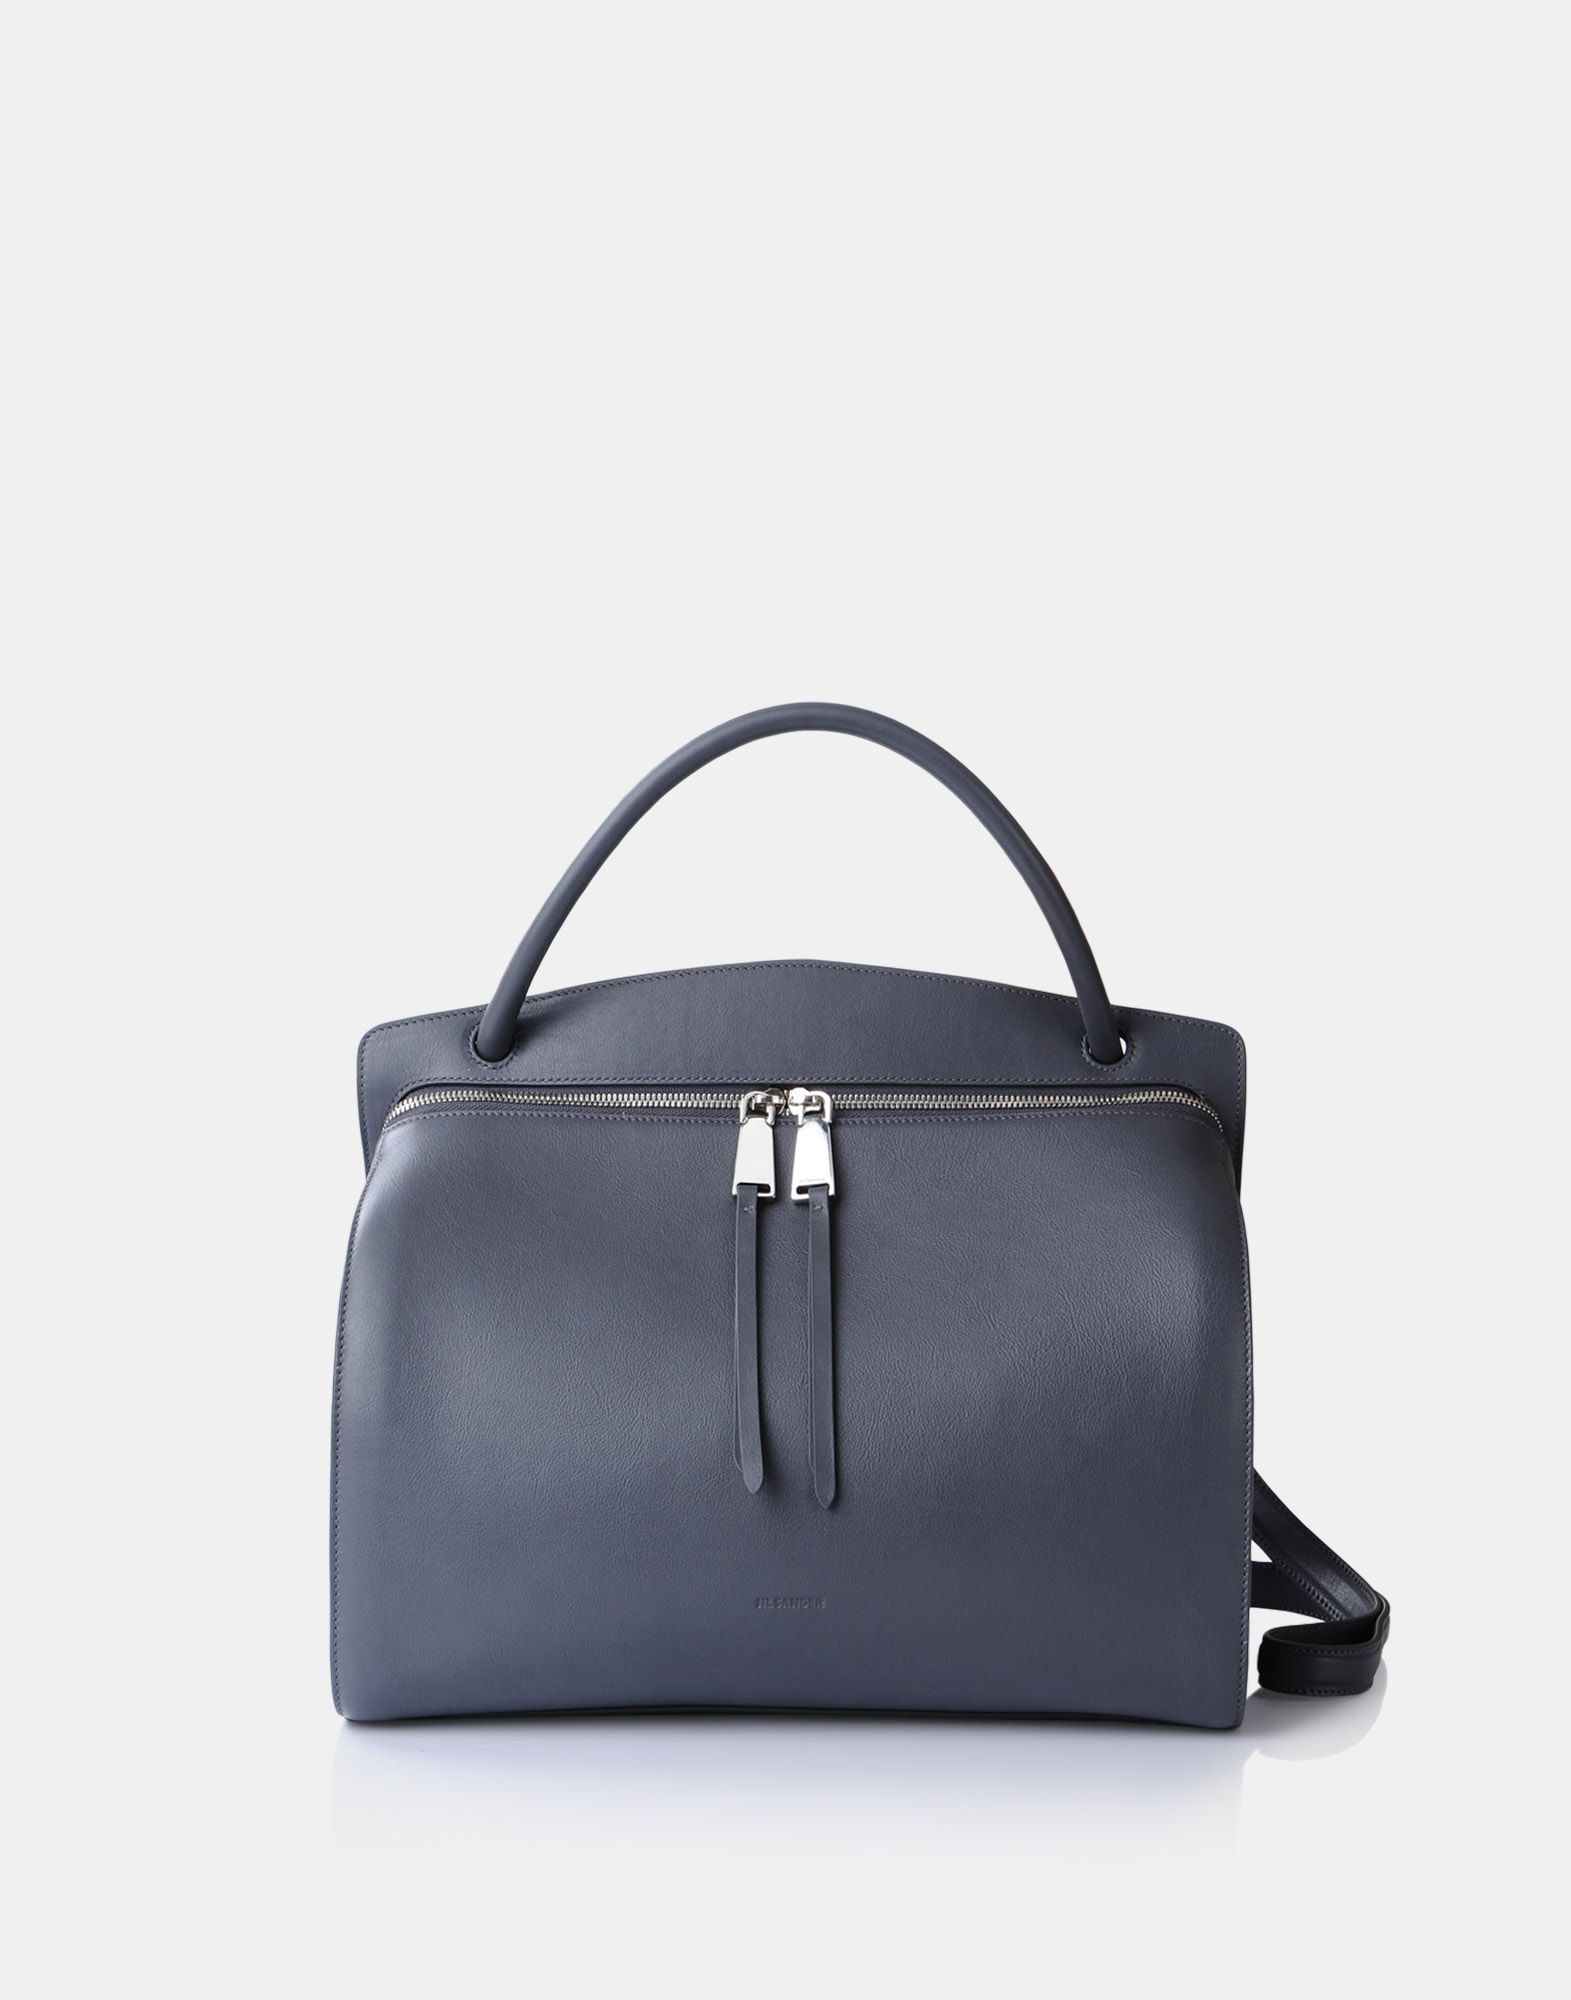 Outlet Pay With Visa Jil Sander Handbag Shop For Sale Fast Delivery Sale Online Buy Cheap Really Cheap Sale In China jgWhaMzvY